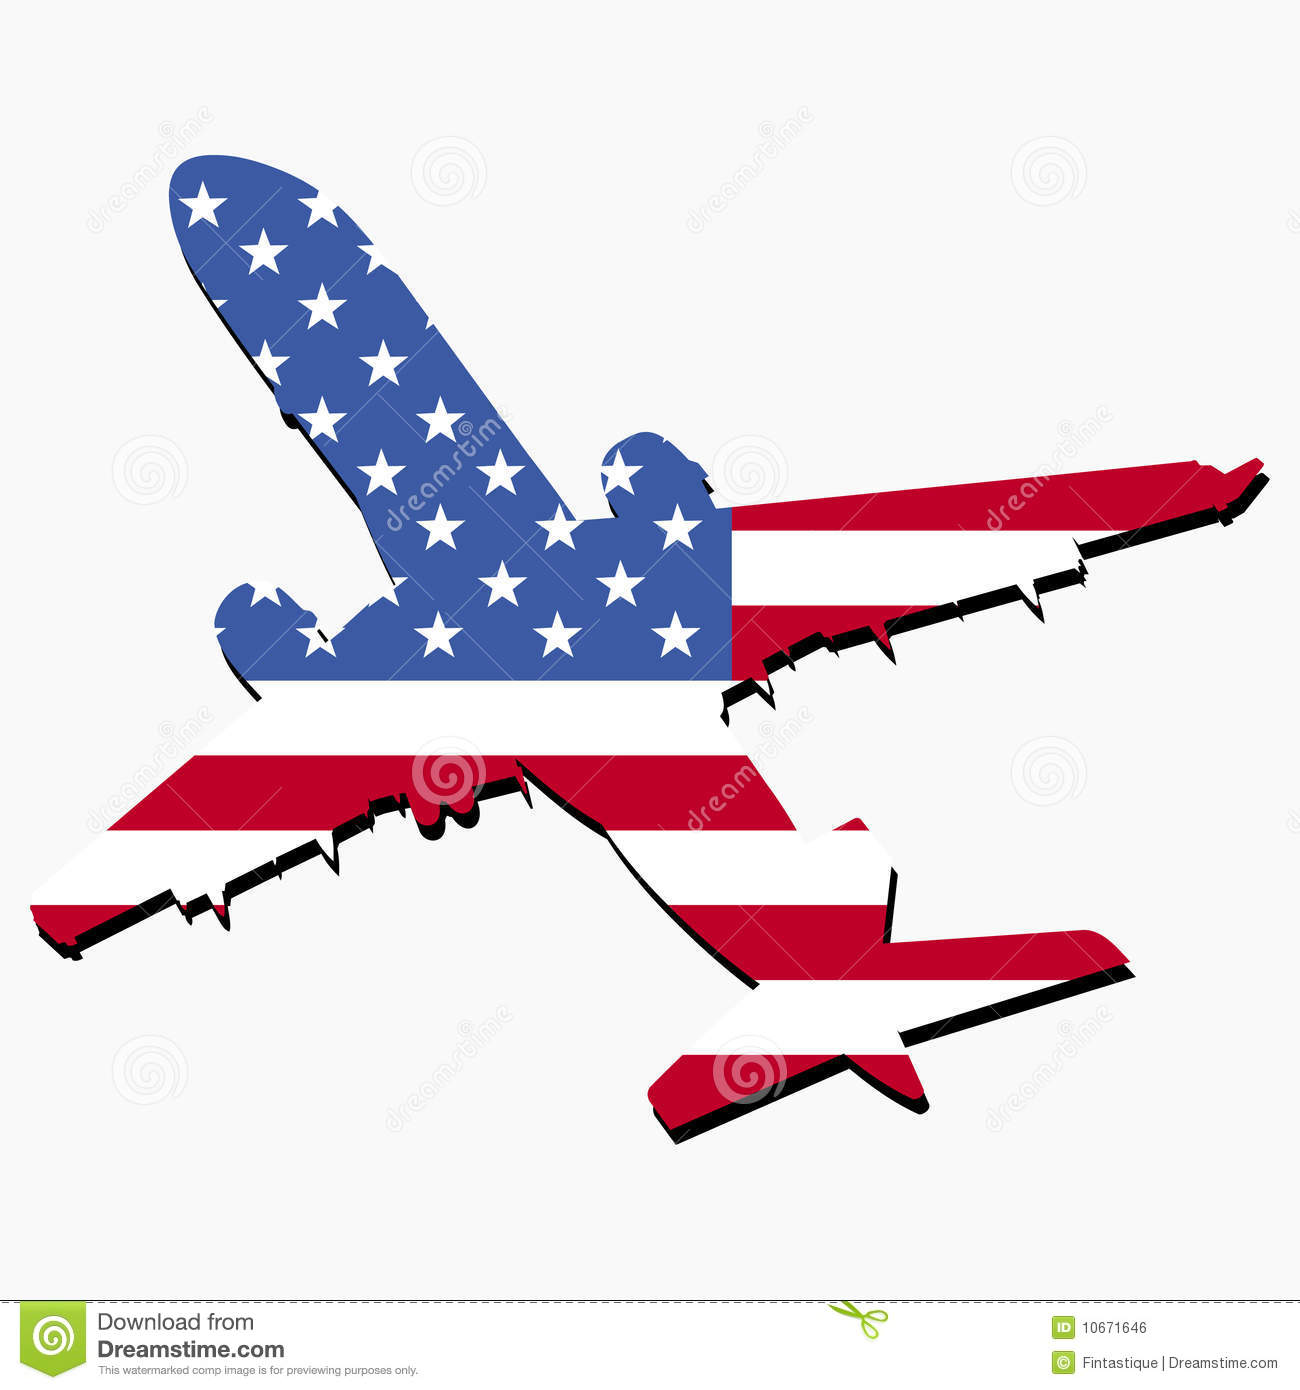 Plane With American Flag Royalty Free Stock Image